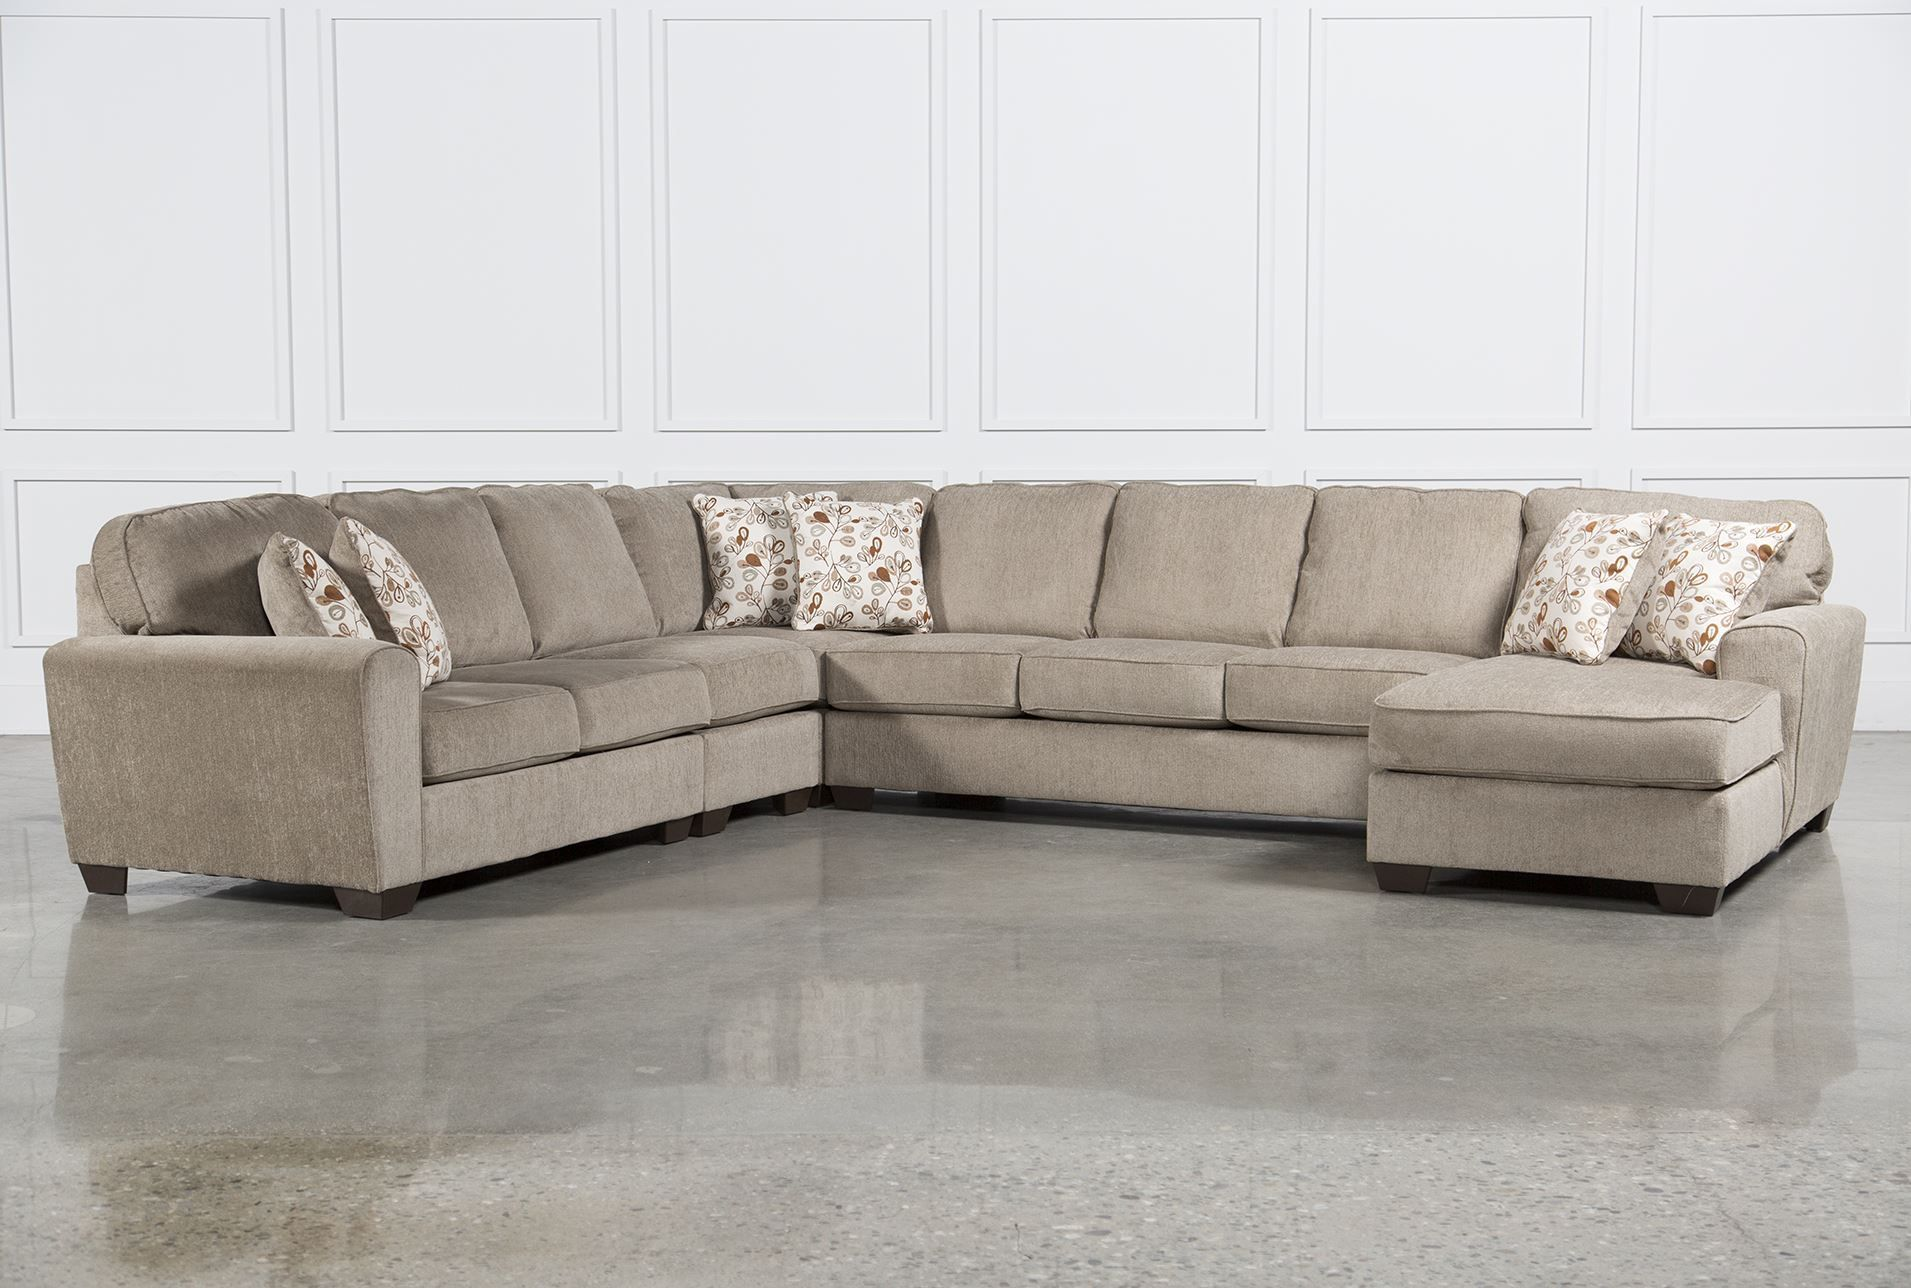 Superb Ashley Patola Park 5 Piece Sectional W Raf Chaise Brown Forskolin Free Trial Chair Design Images Forskolin Free Trialorg